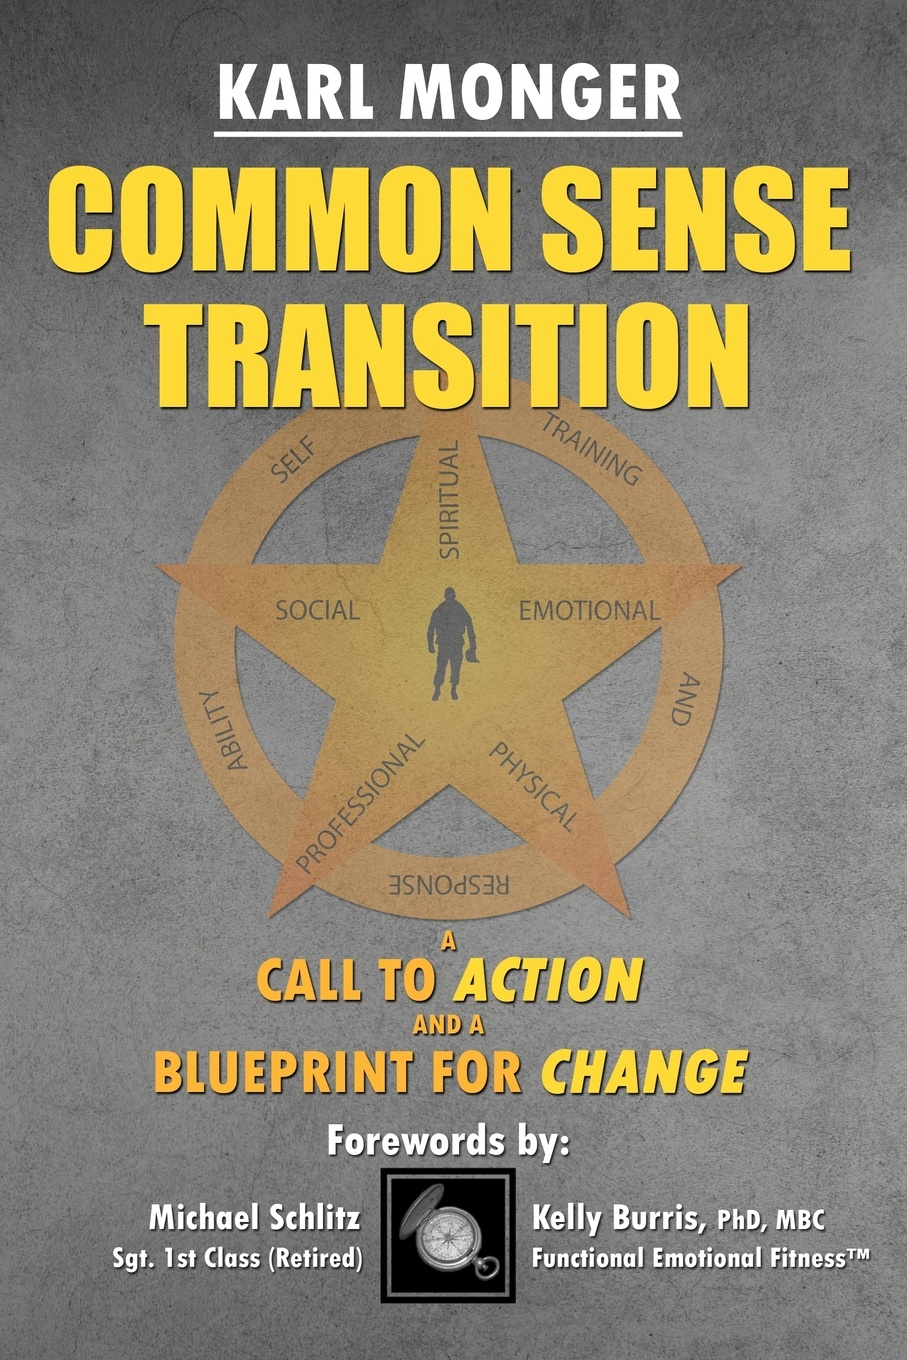 Karl P Monger Common Sense Transition. A Call to Action and A Blueprint for Change negotiating the transition